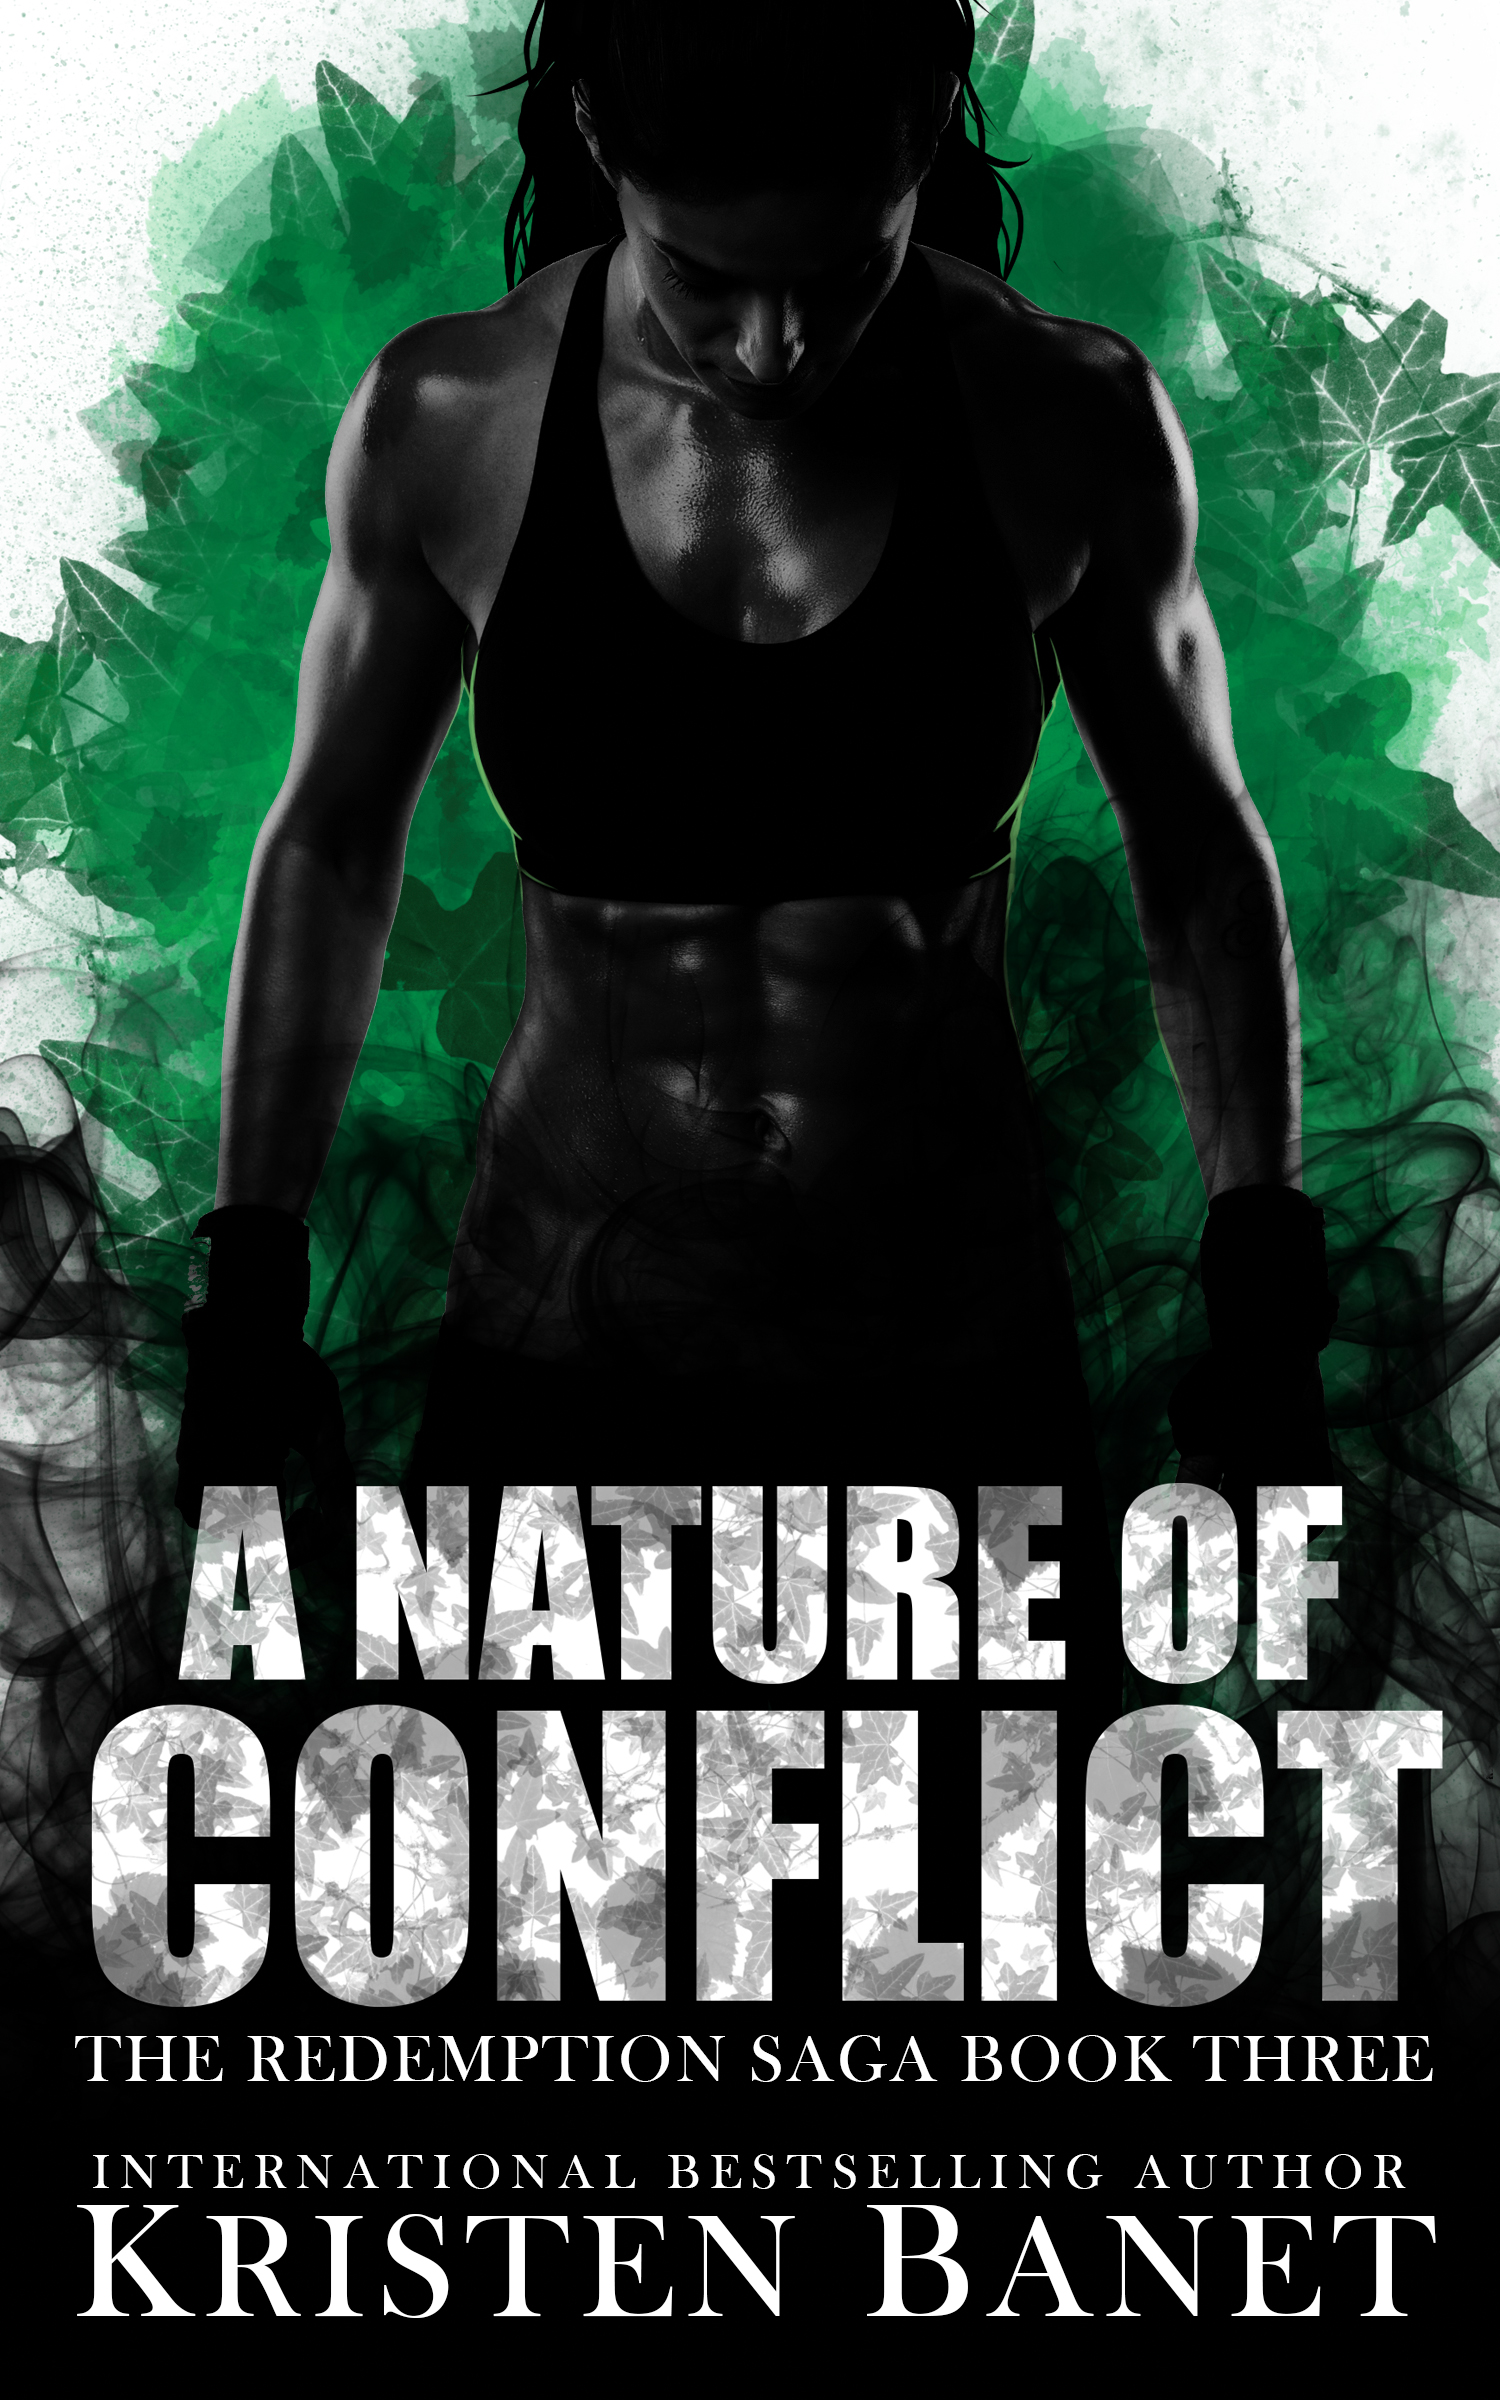 A Nature of Conflict, Redemption Saga Book Three by Kristen Banet